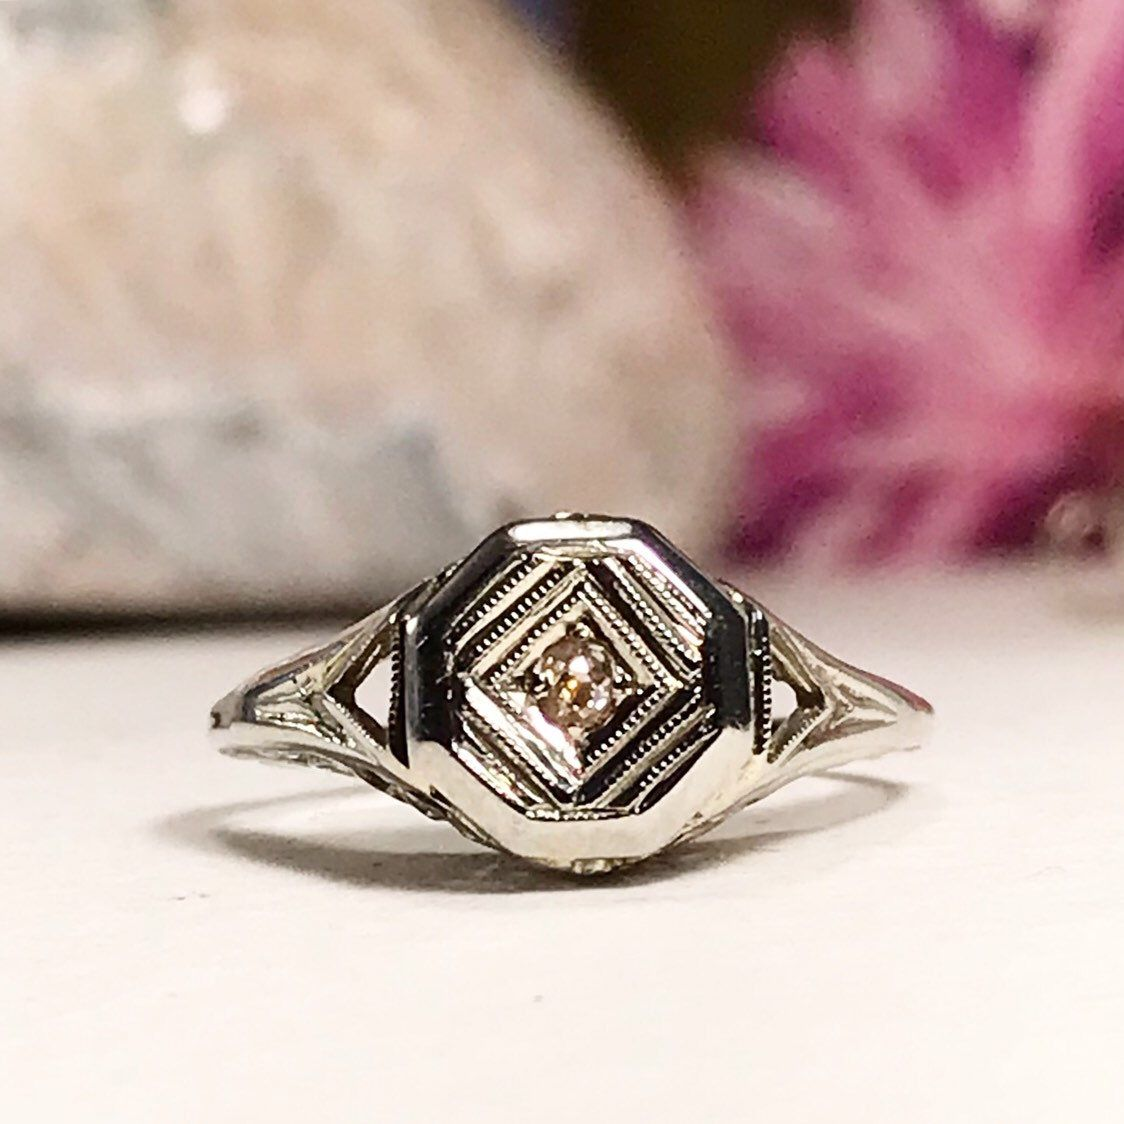 Art deco 18k white gold filigree ring with champagne